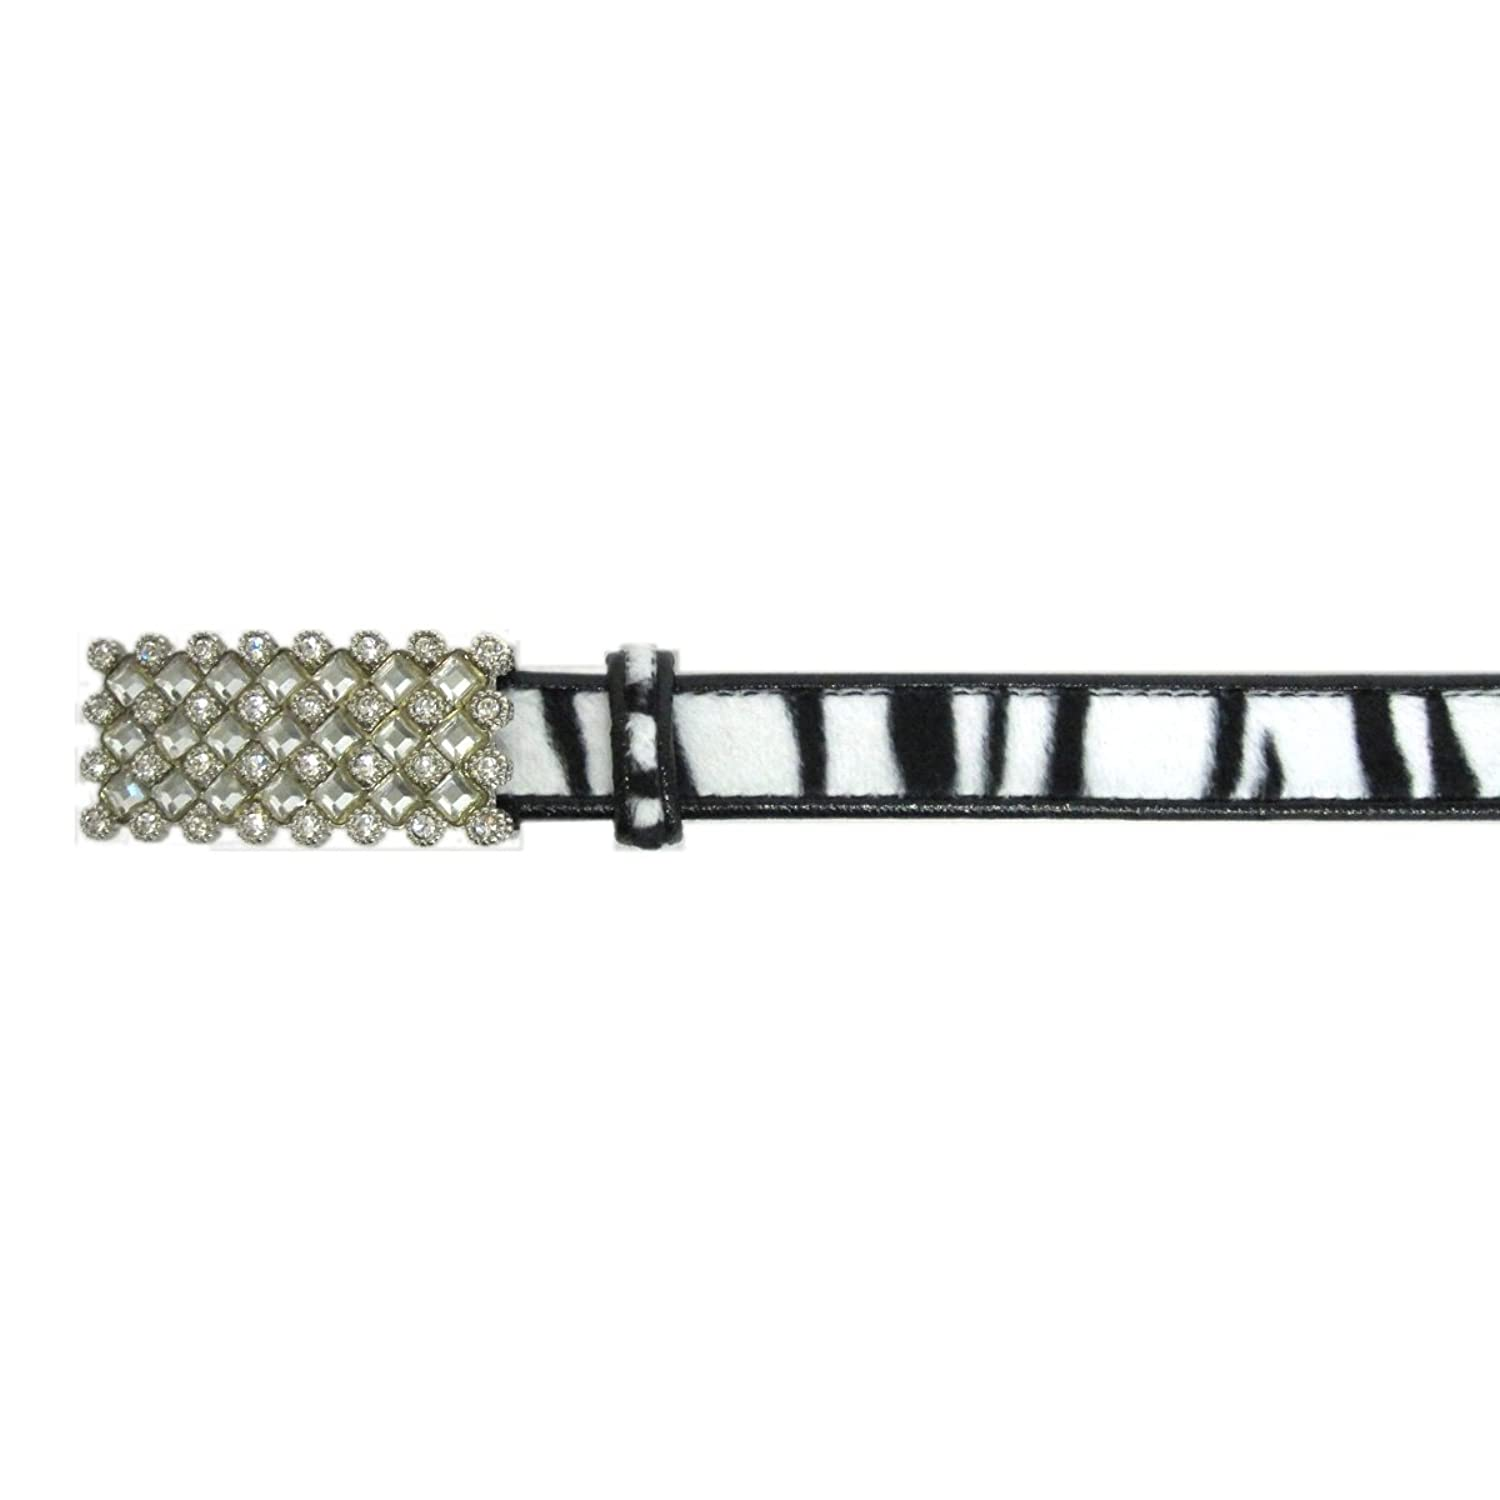 "1"" Women's Fashion Rectangular Clear Crystal Embellished Buckle on Quality"